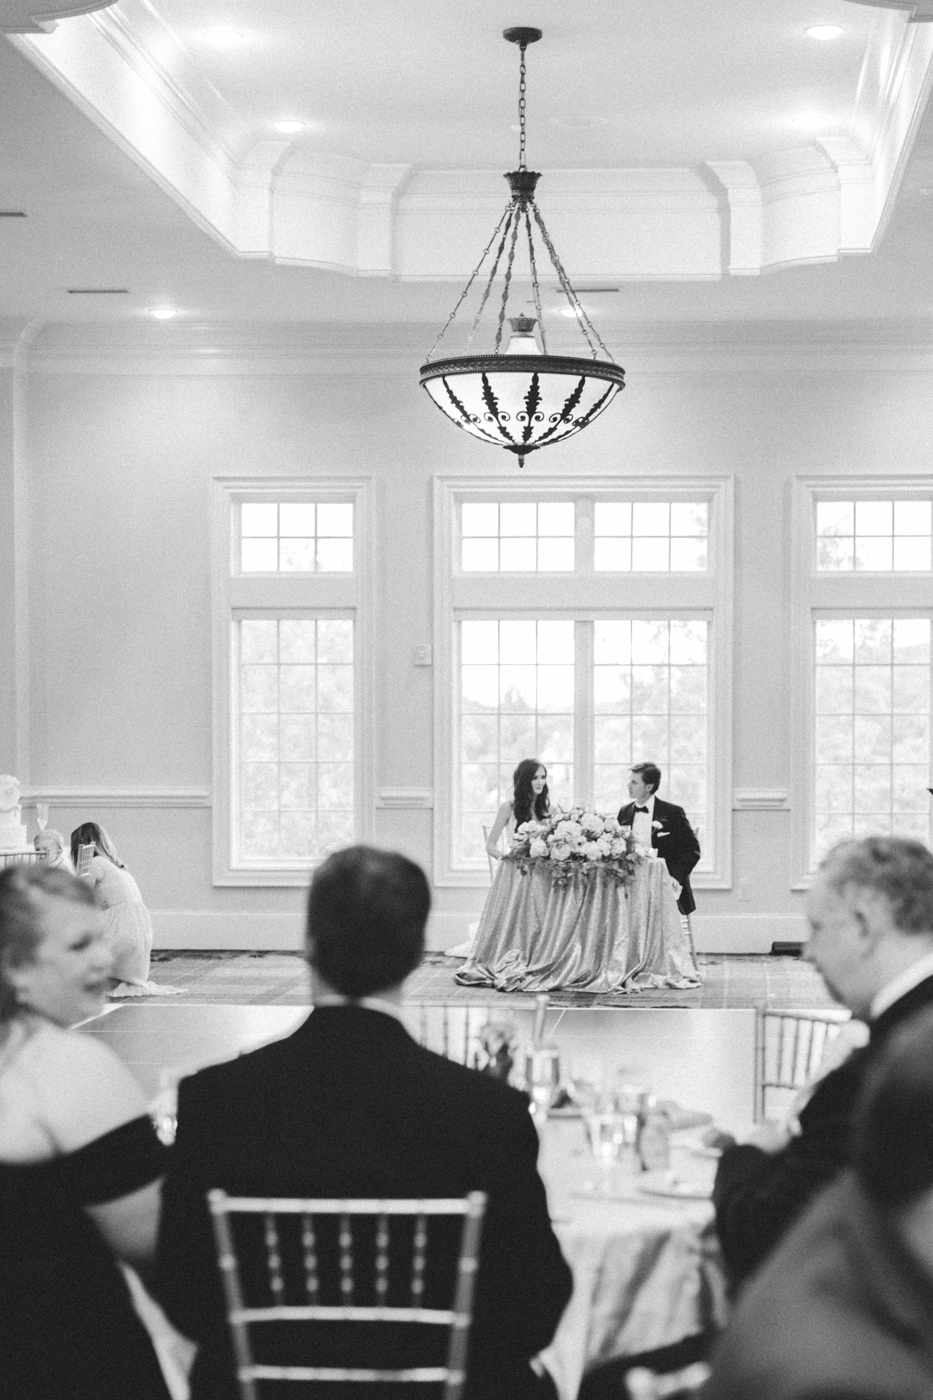 four corners photography best atlanta wedding photographer the manor golf and country club wedding photos southern weddings bride magazine wedding photos atlanta photographer-43.jpg